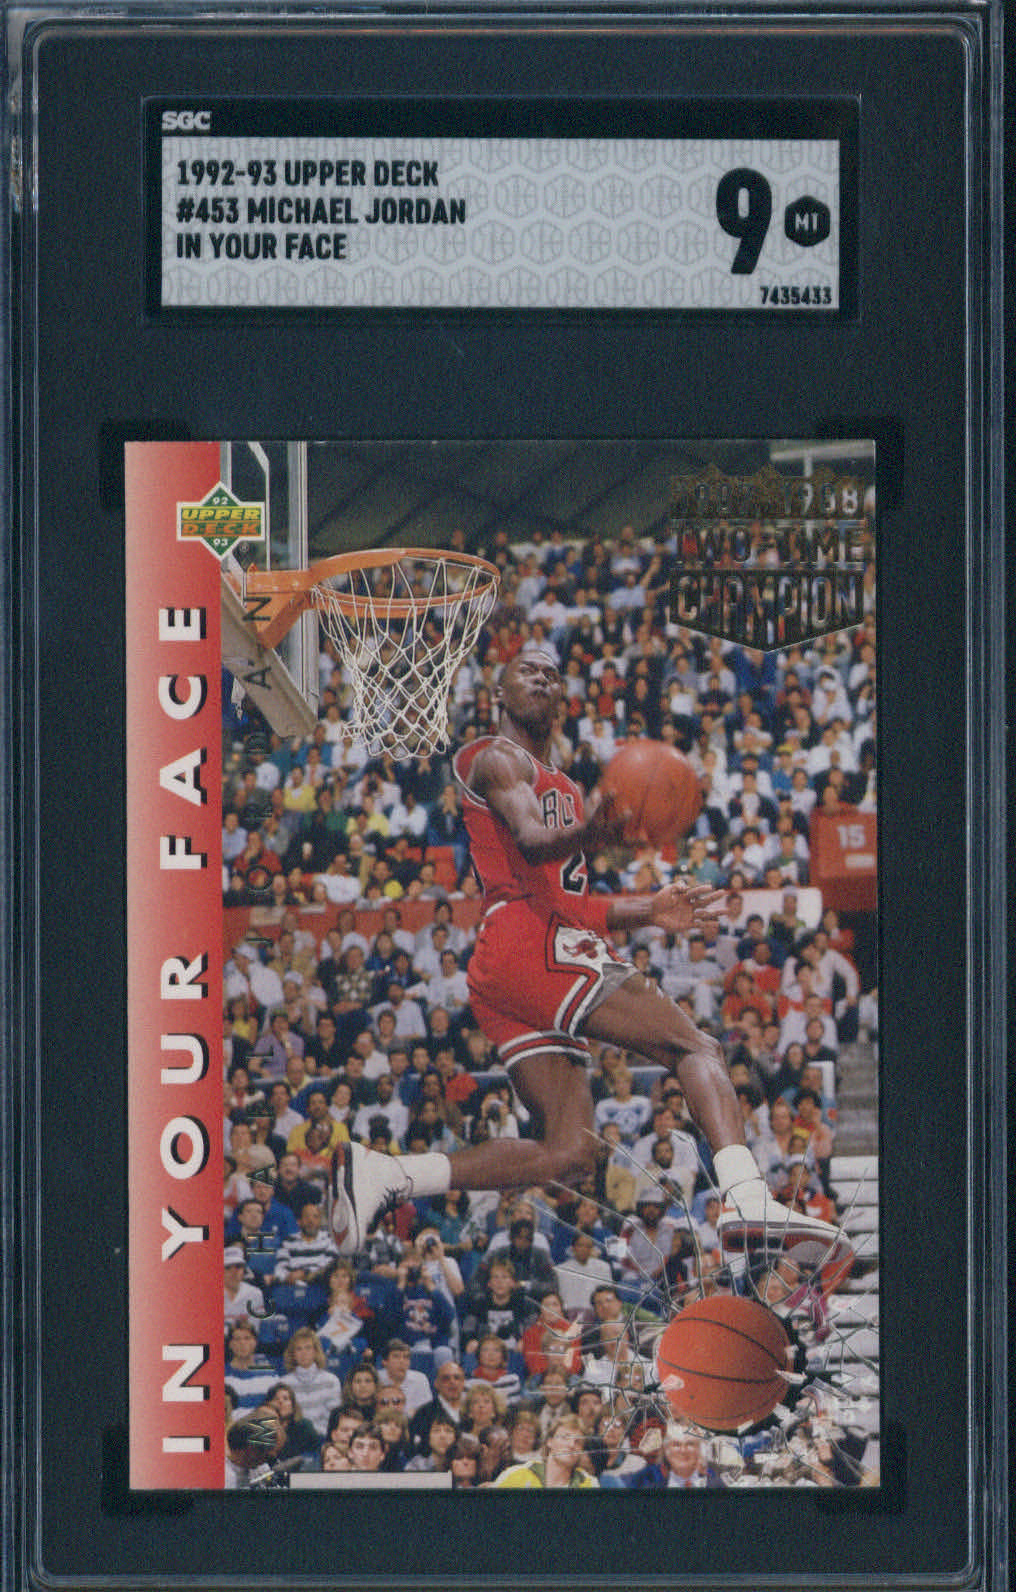 1992 Upper Deck In Your Face Two-Time Champion #453 Michael Jordan SGC 9